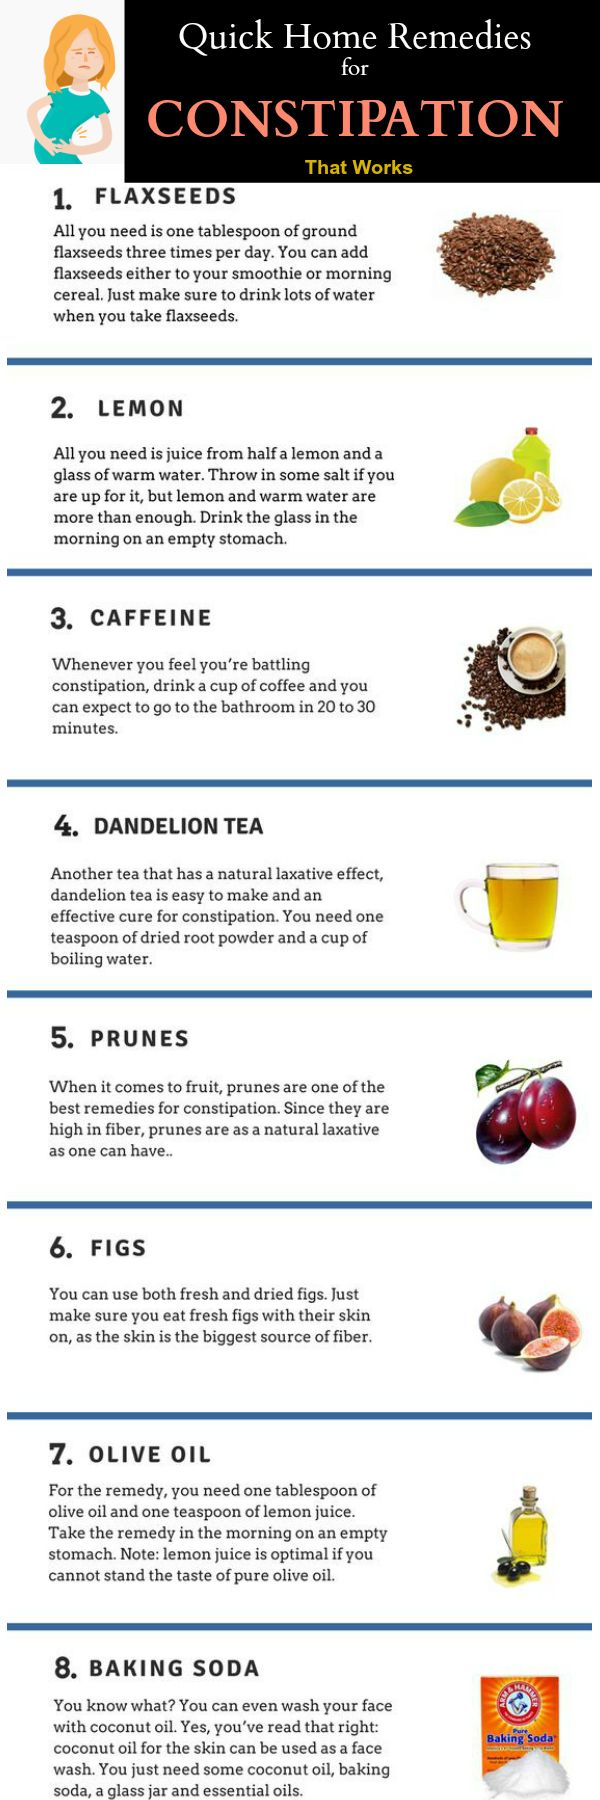 Quick Home Remedies for Constipation that works